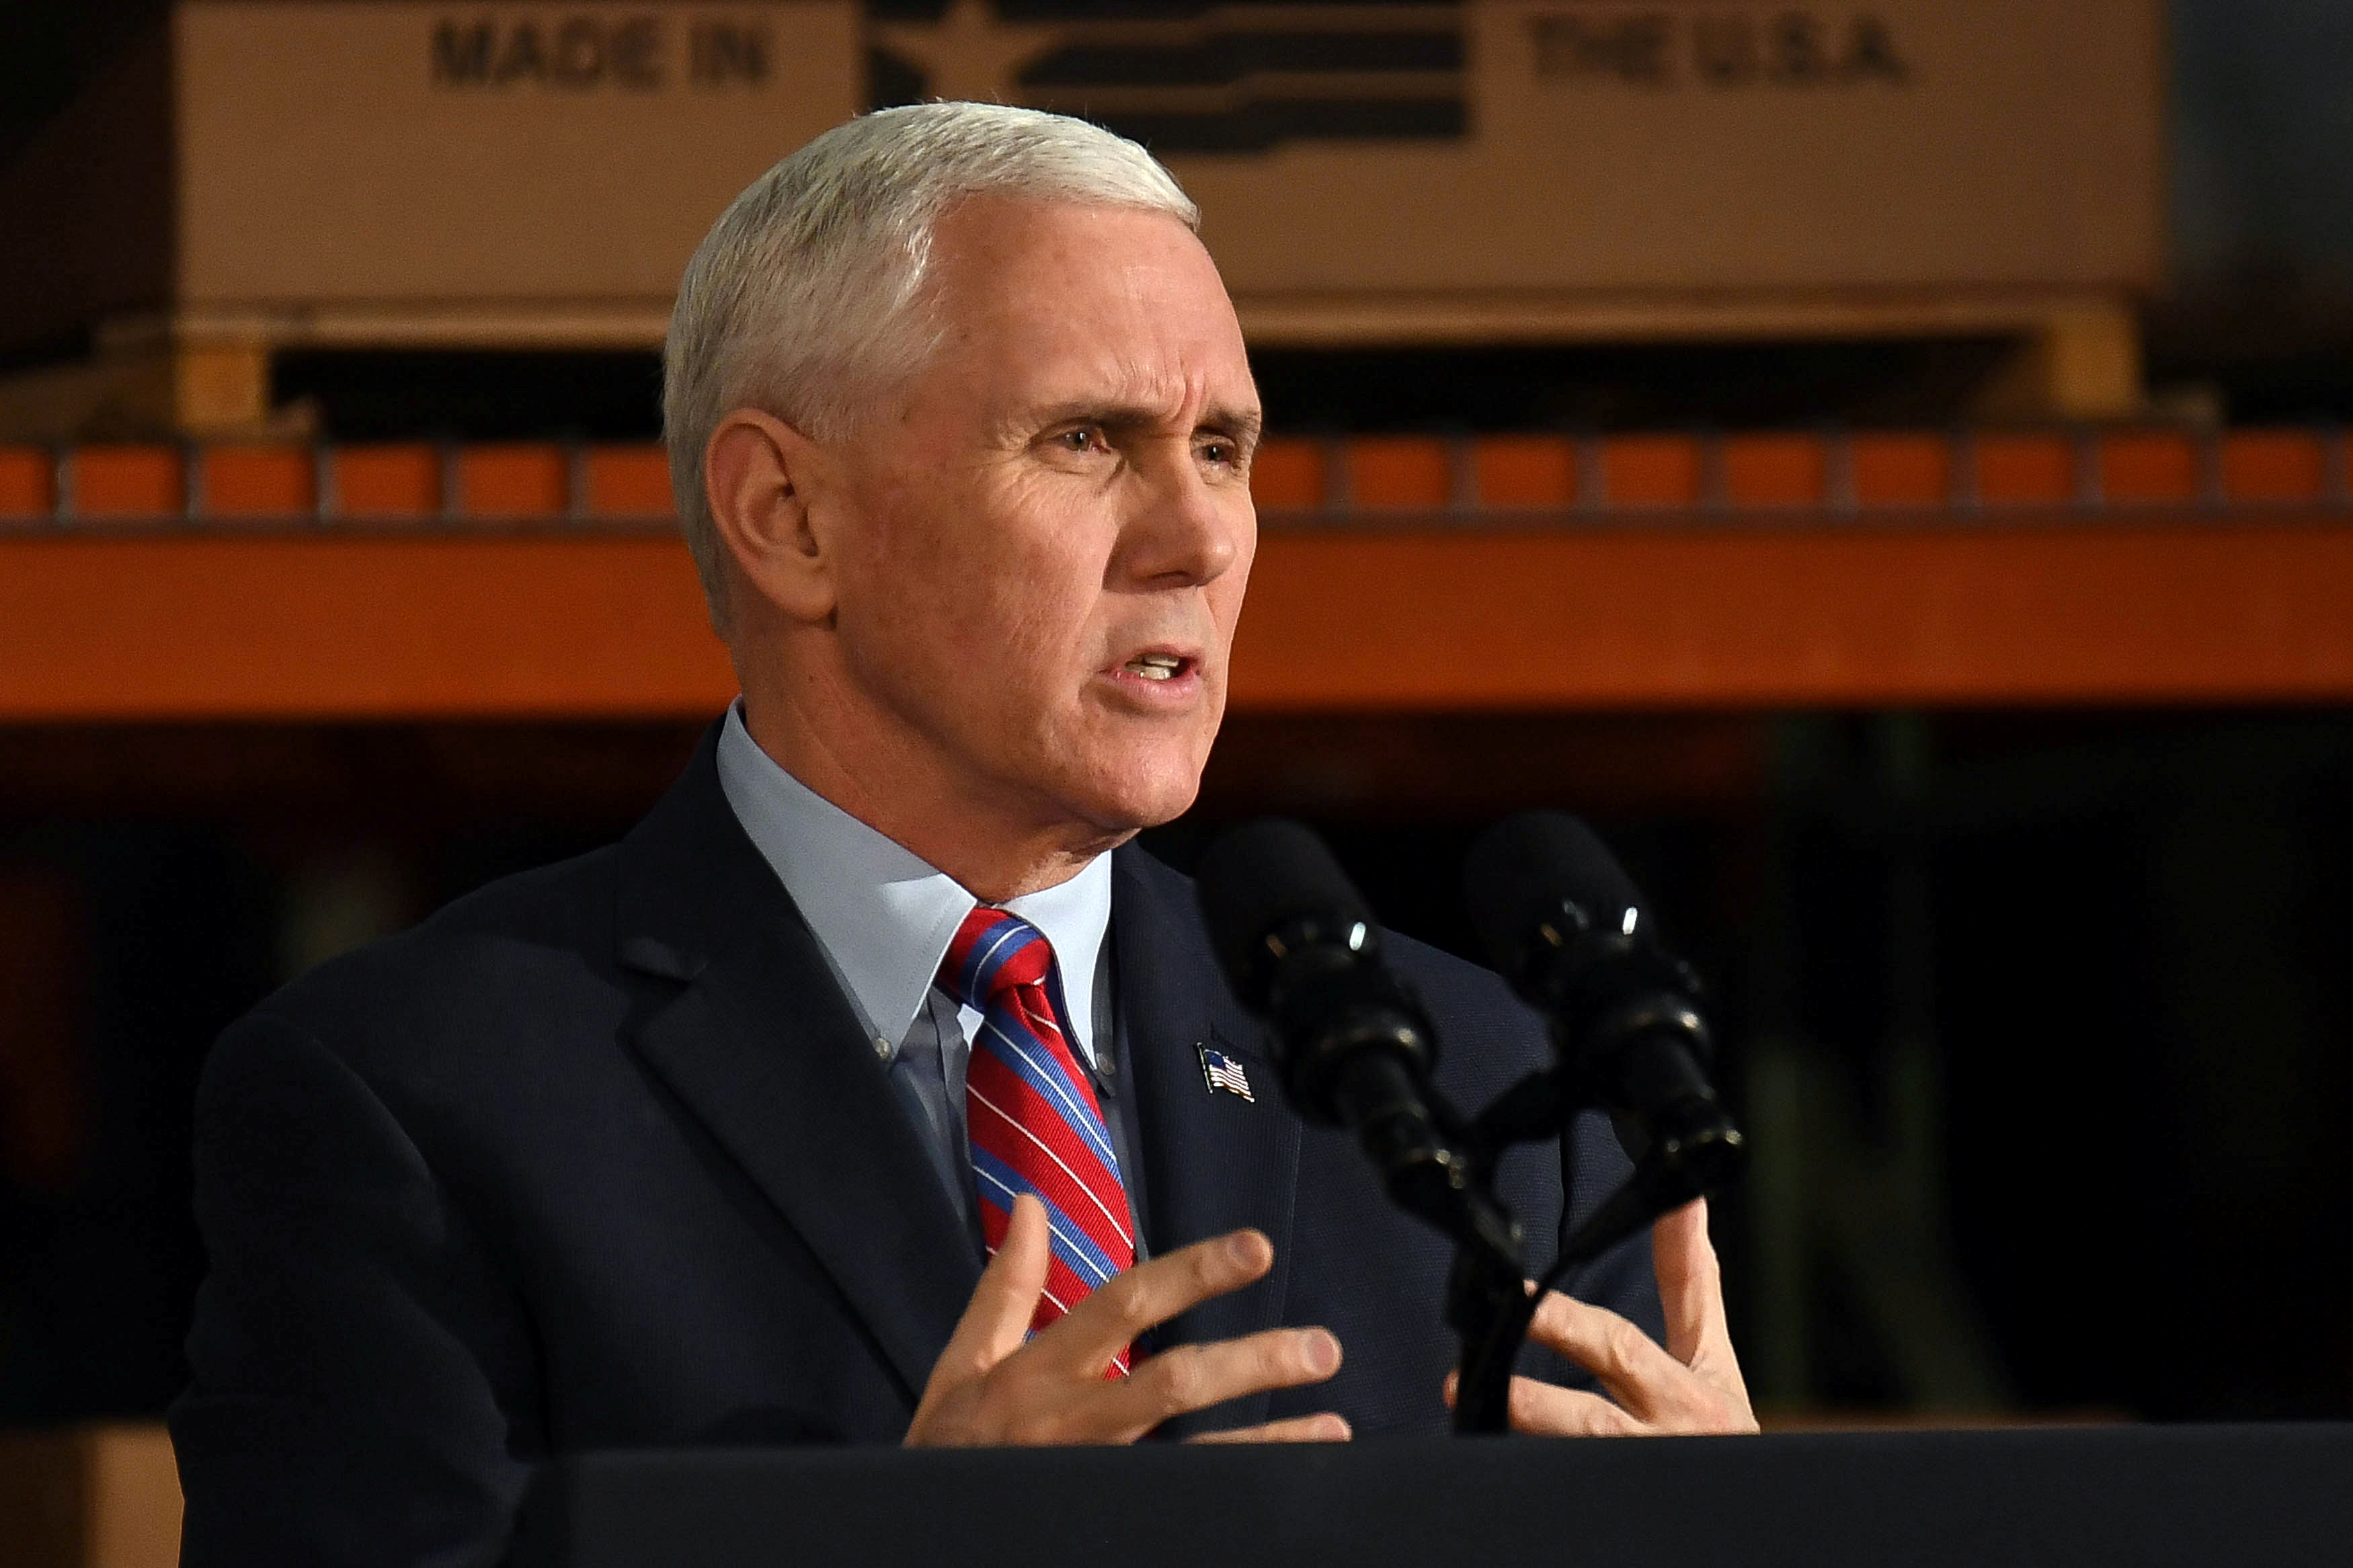 U.S. Vice President Mike Pence speaks about the American Health Care Act during a visit to the Harshaw-Trane Parts and Distribution Center in Louisville, Kentucky, U.S